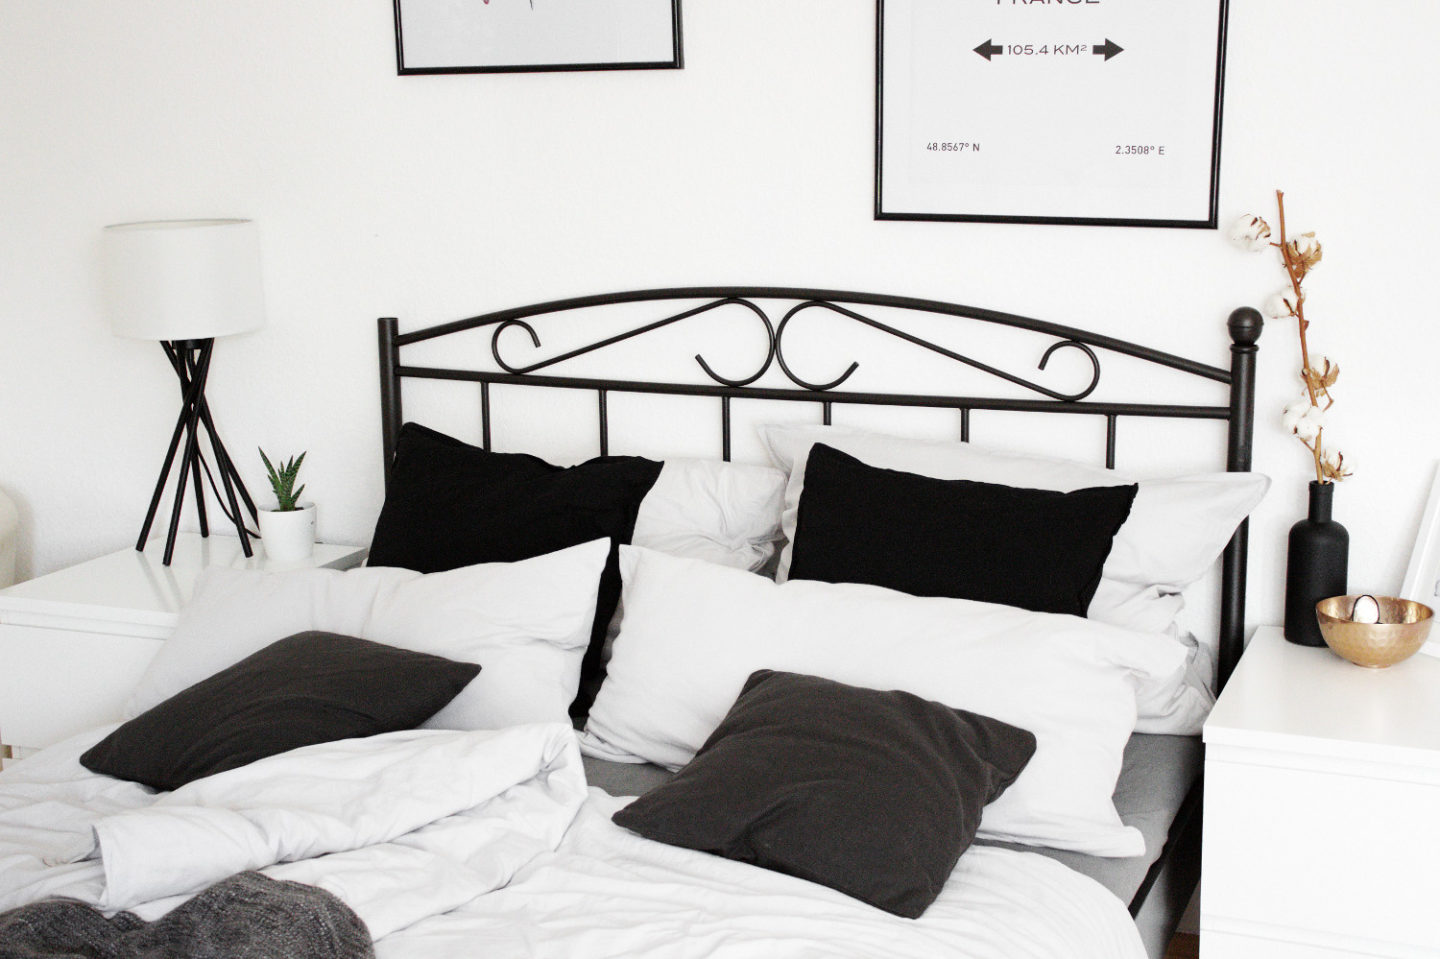 schlafzimmer einrichtung bett minimal interior dekoration. Black Bedroom Furniture Sets. Home Design Ideas